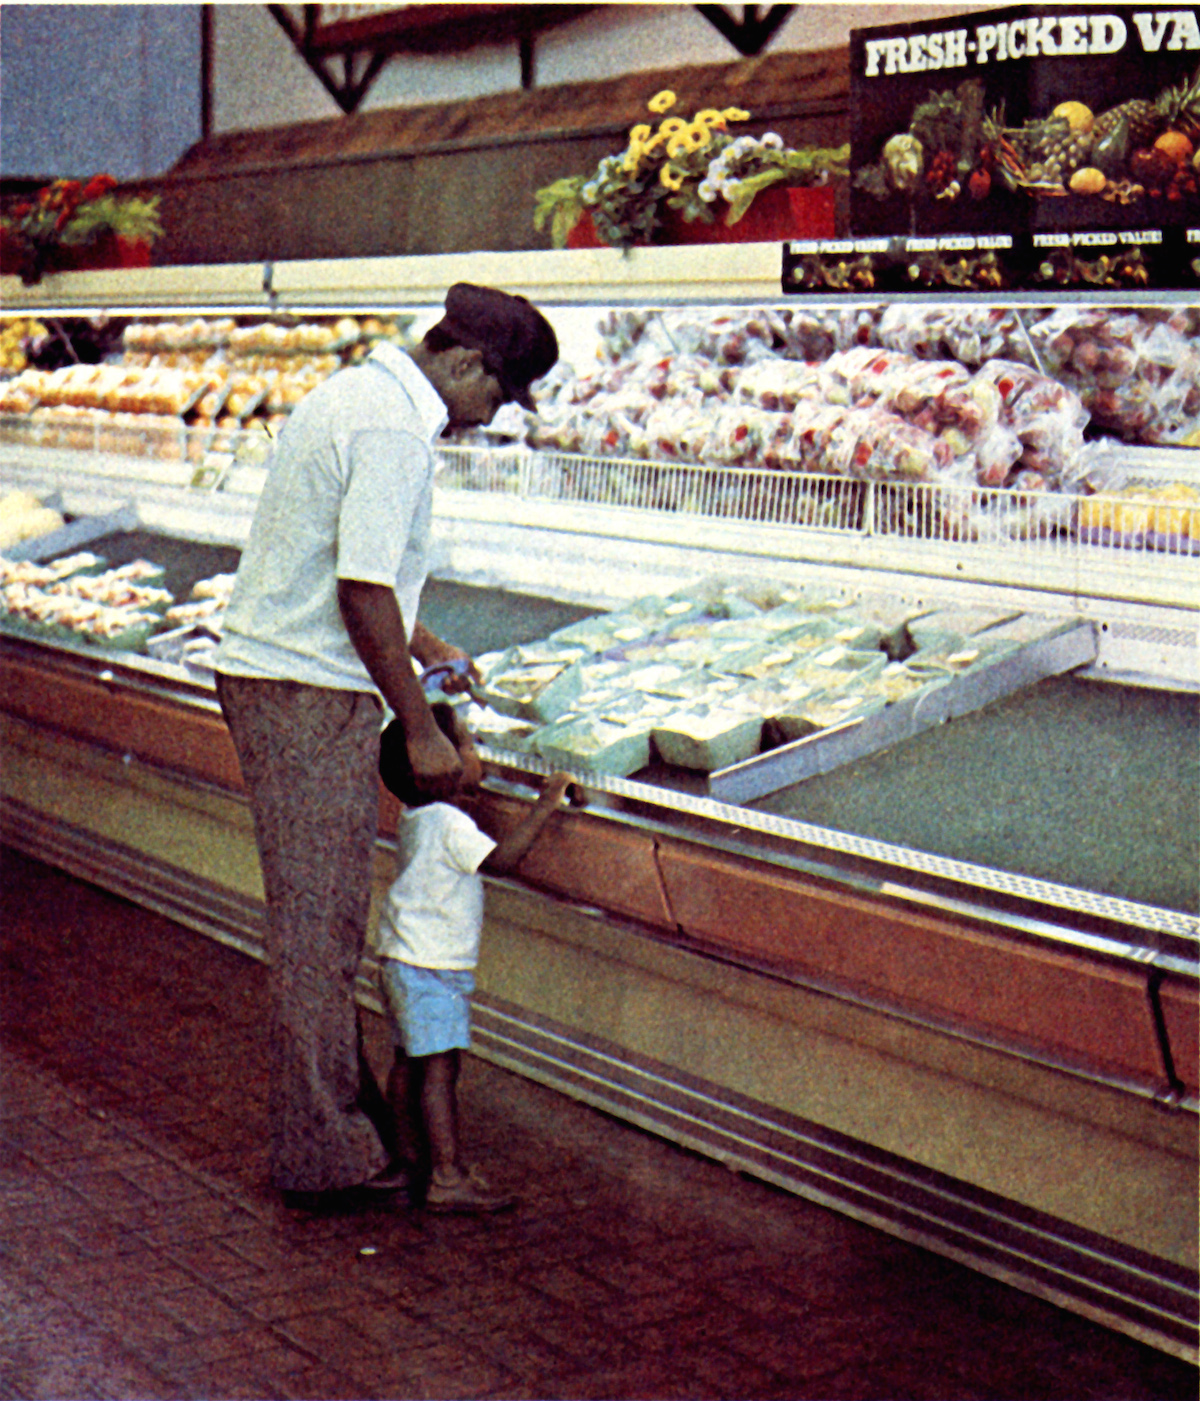 Markets And Menus 1974 supermarkets USA